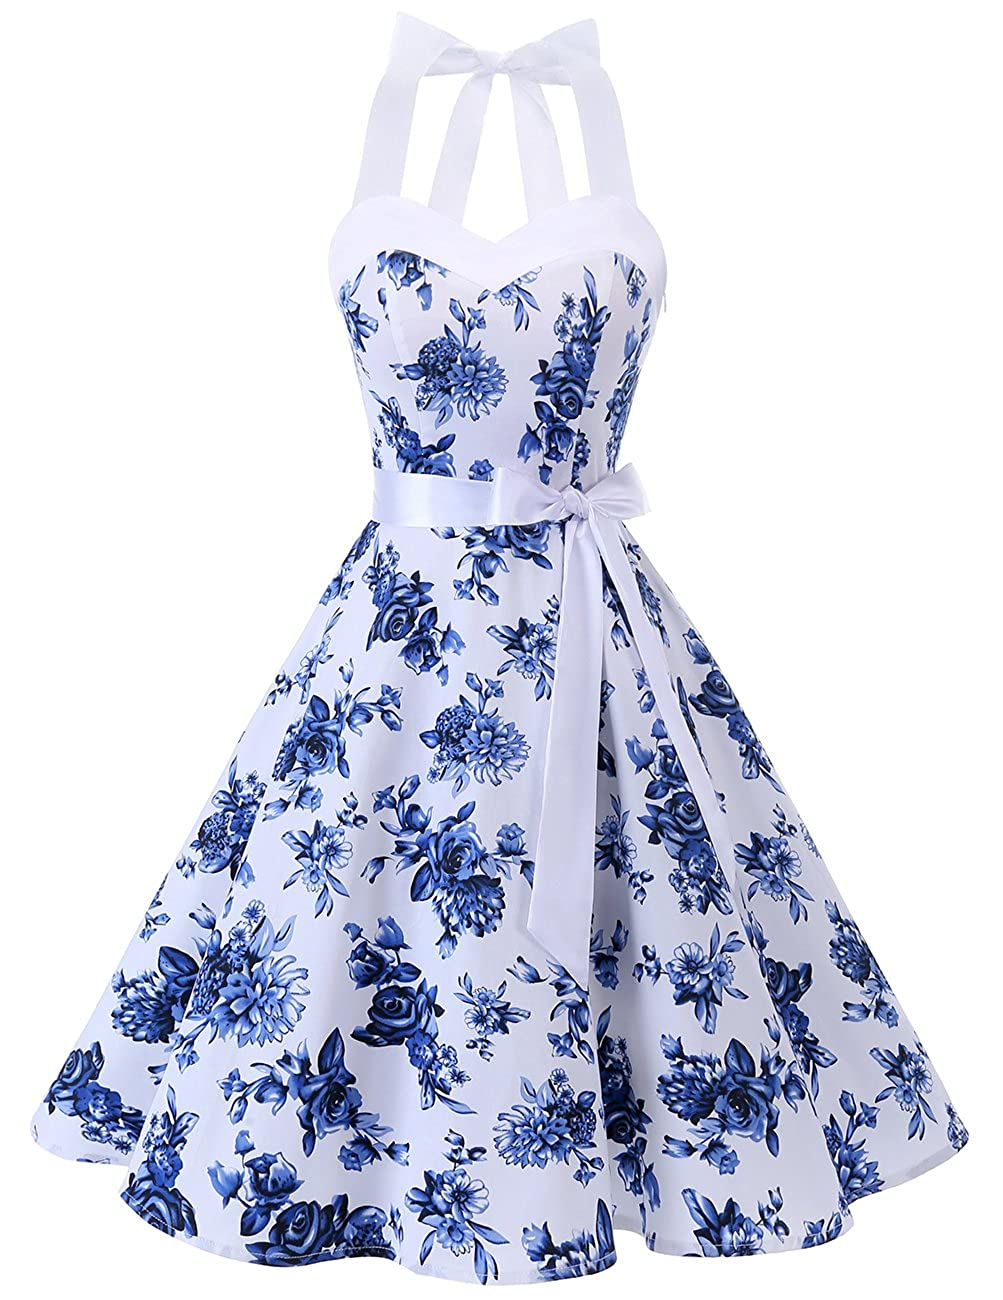 TALLA M-36/38/40. Dresstells® Halter 50s Rockabilly Polka Dots Audrey Dress Retro Cocktail Dress White Blue Flower M-36/38/40